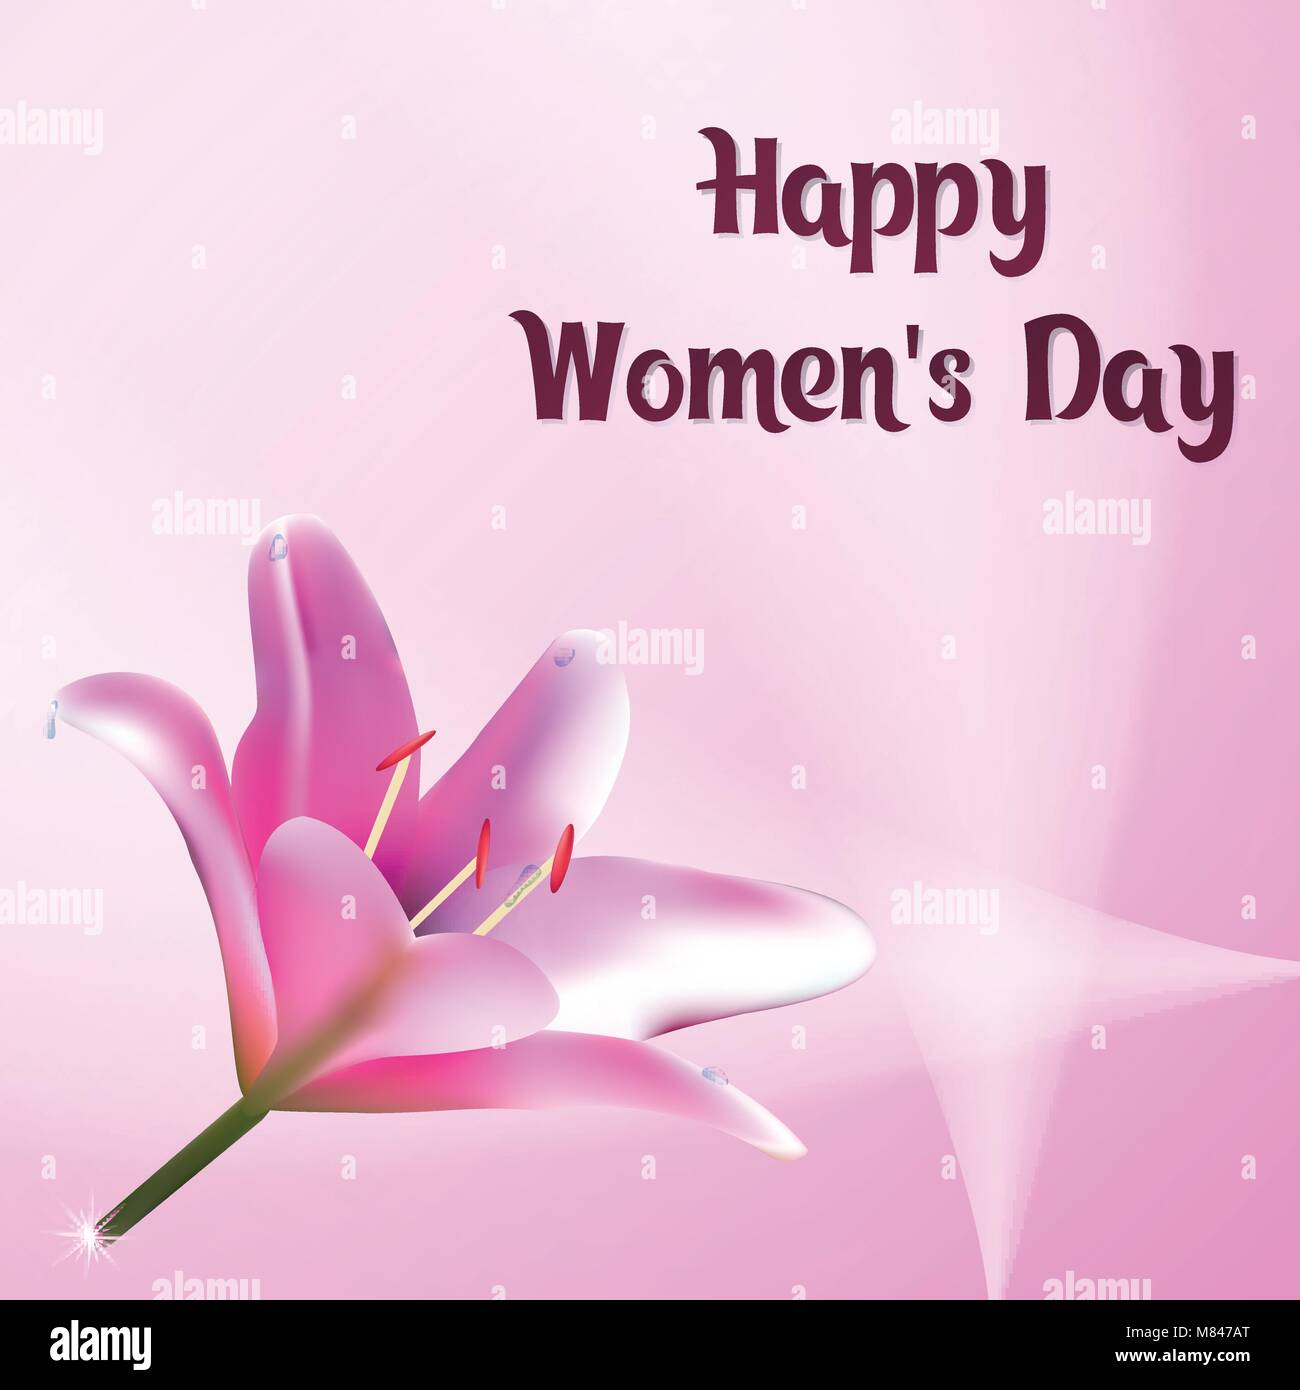 happy women s day greeting card with flower of lily template stock